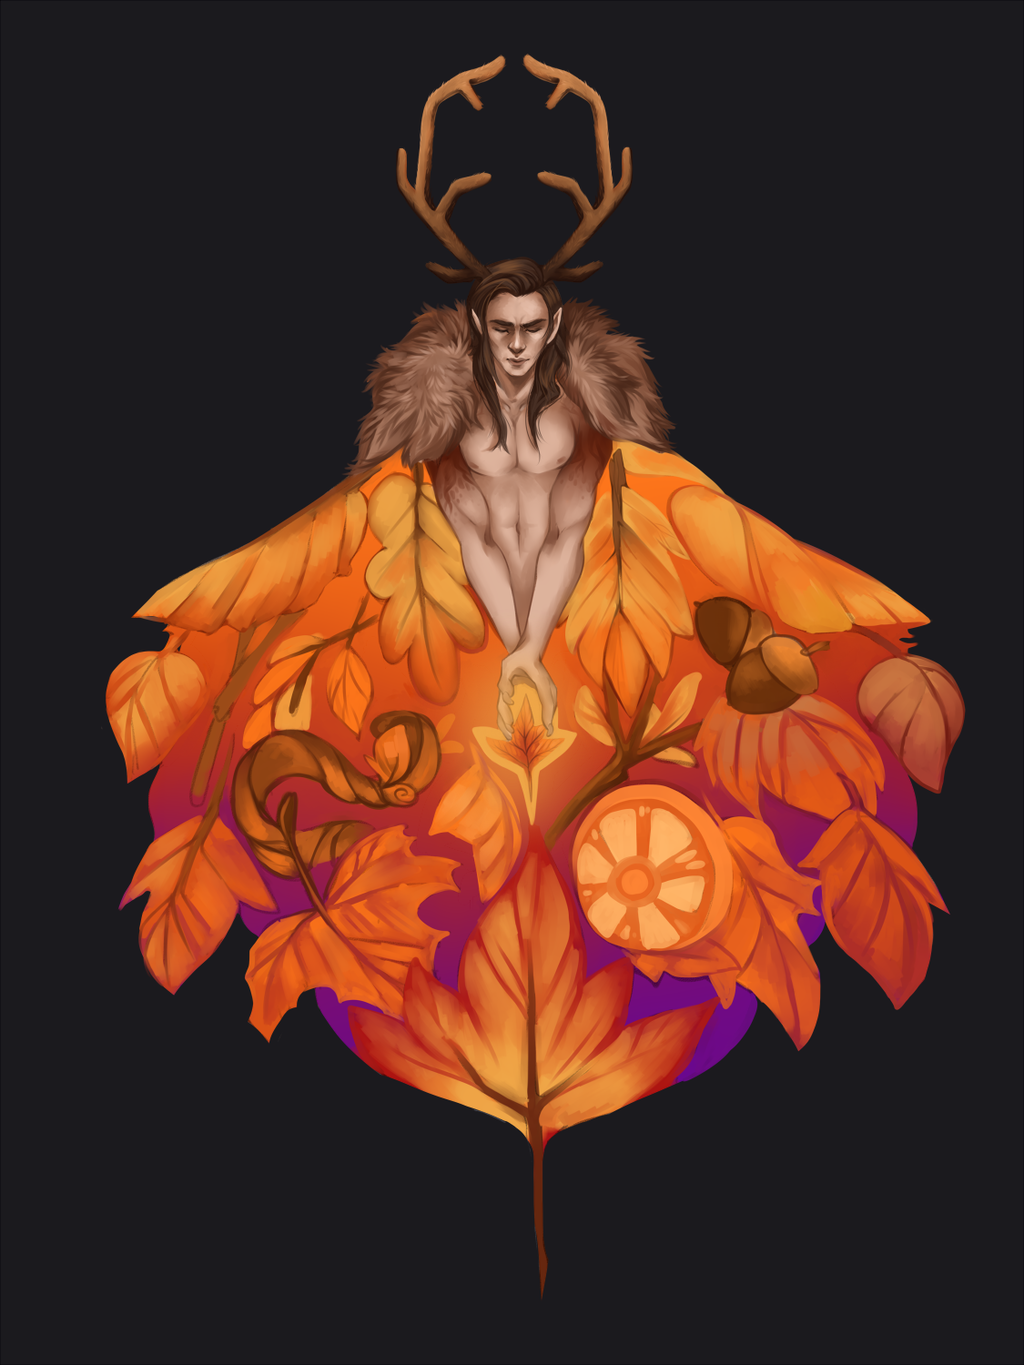 Most recent image: King of Leaves